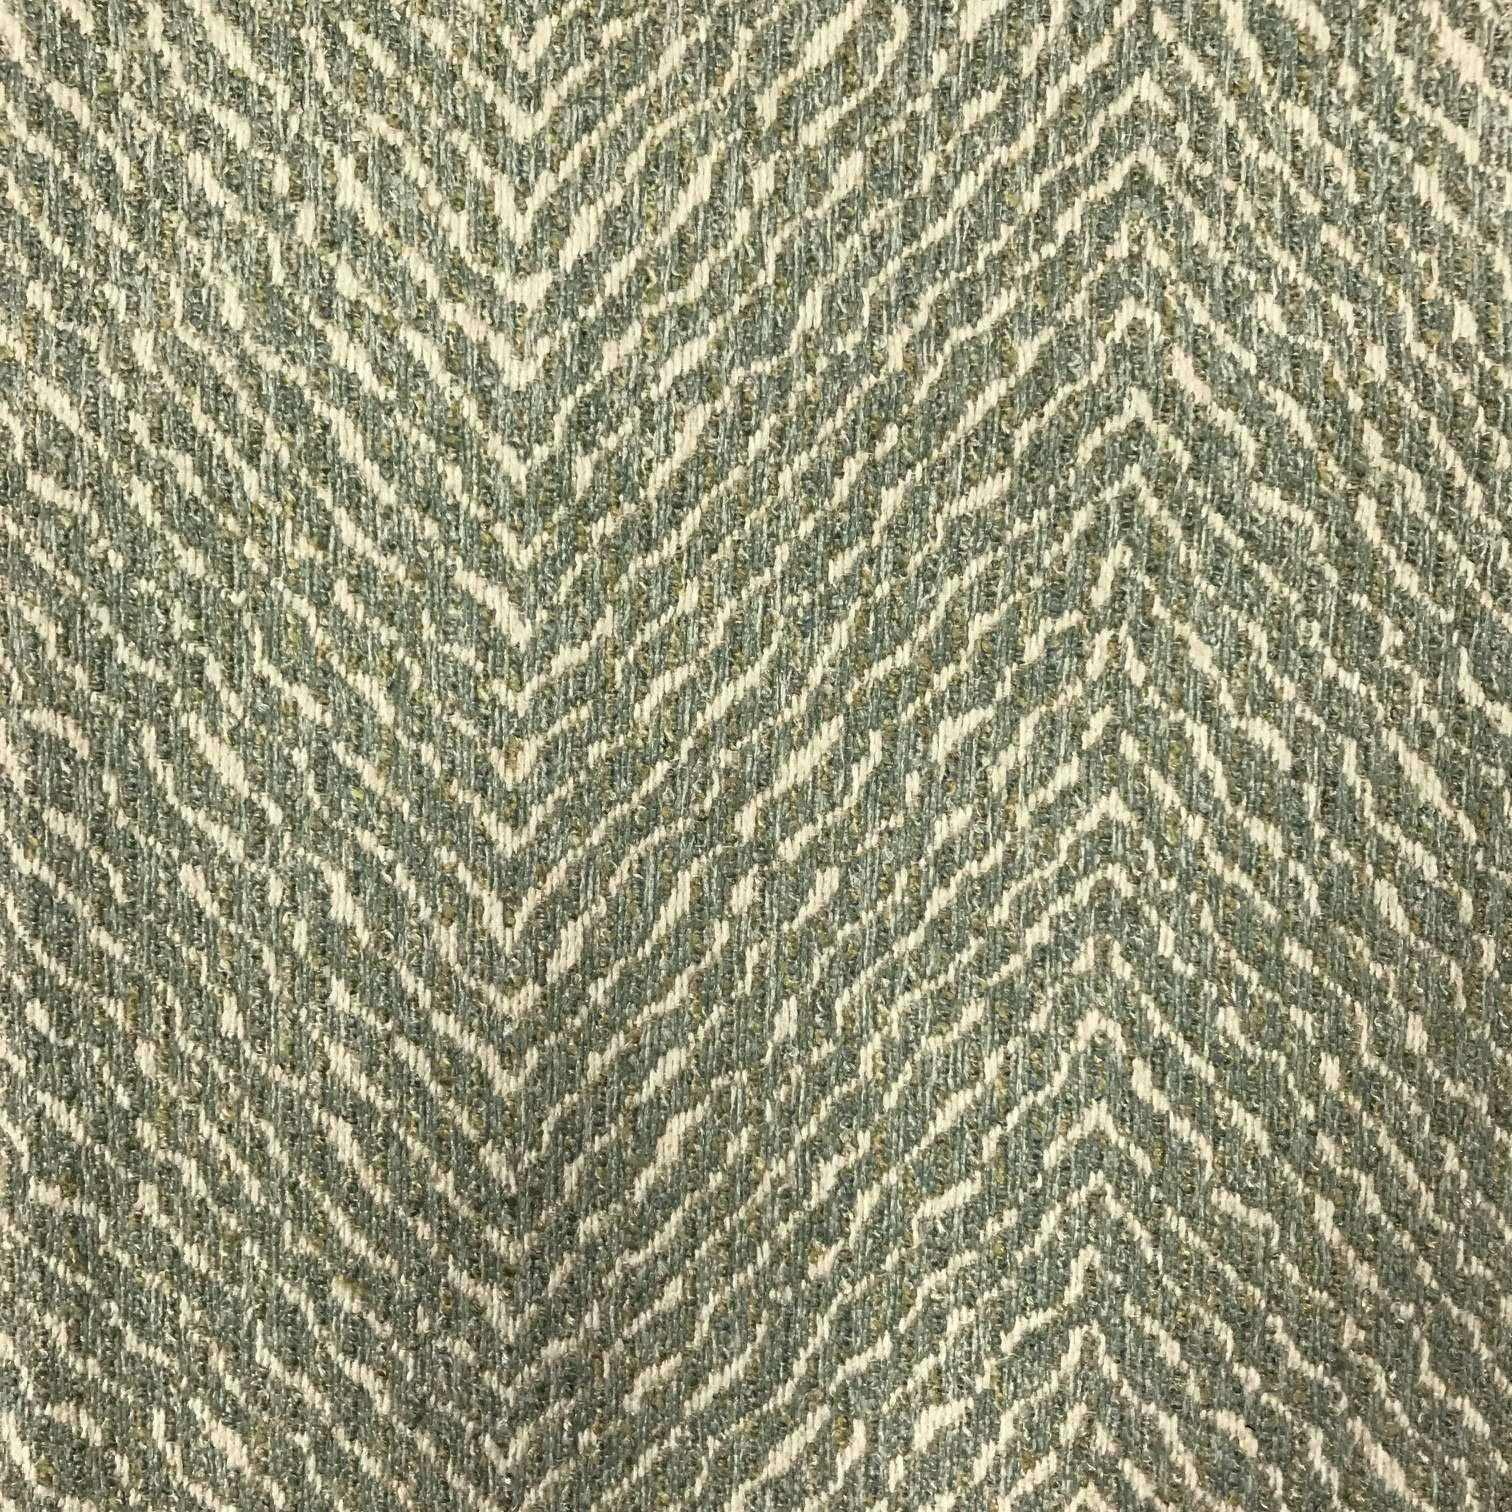 Revolution Naxos Agean Fabric Near Me Google Search Upholstery Fabric Fabric Tough Stain